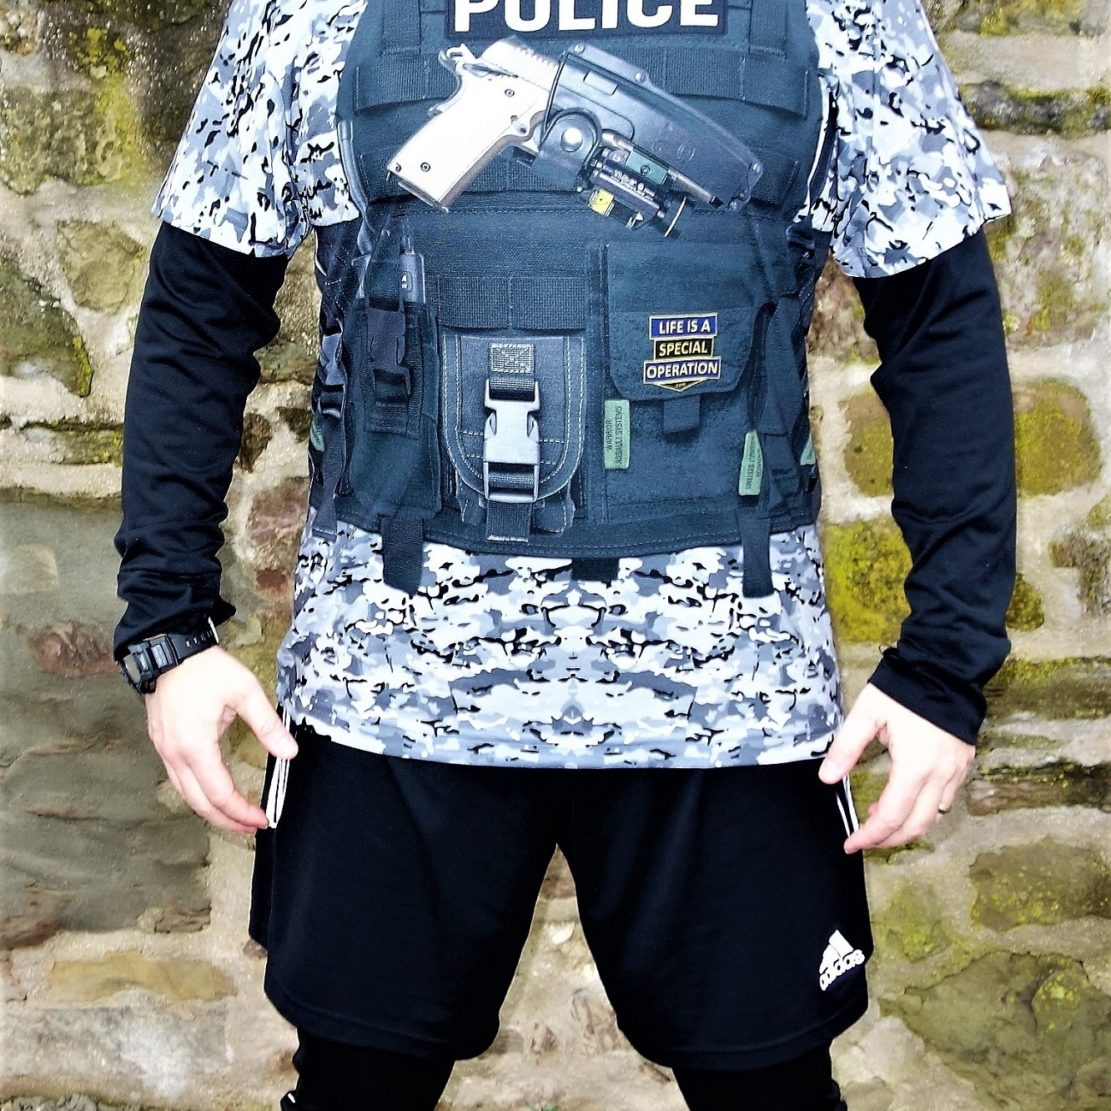 Police Body Armor front image by Life is a Special Operation